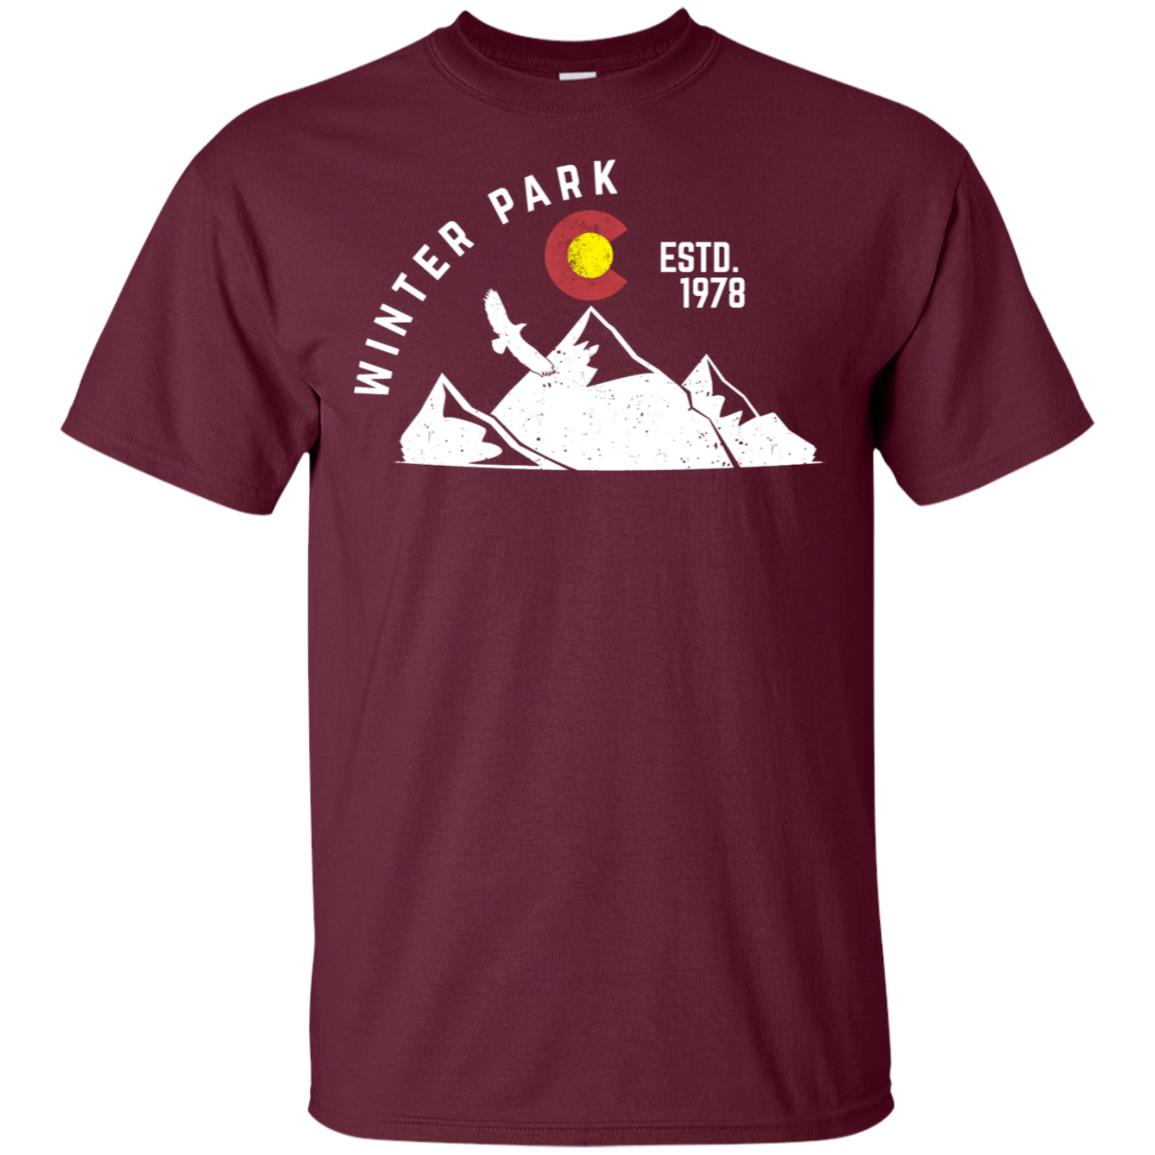 Winter Park Estd 1978 Colorado Vacation Unisex Short Sleeve